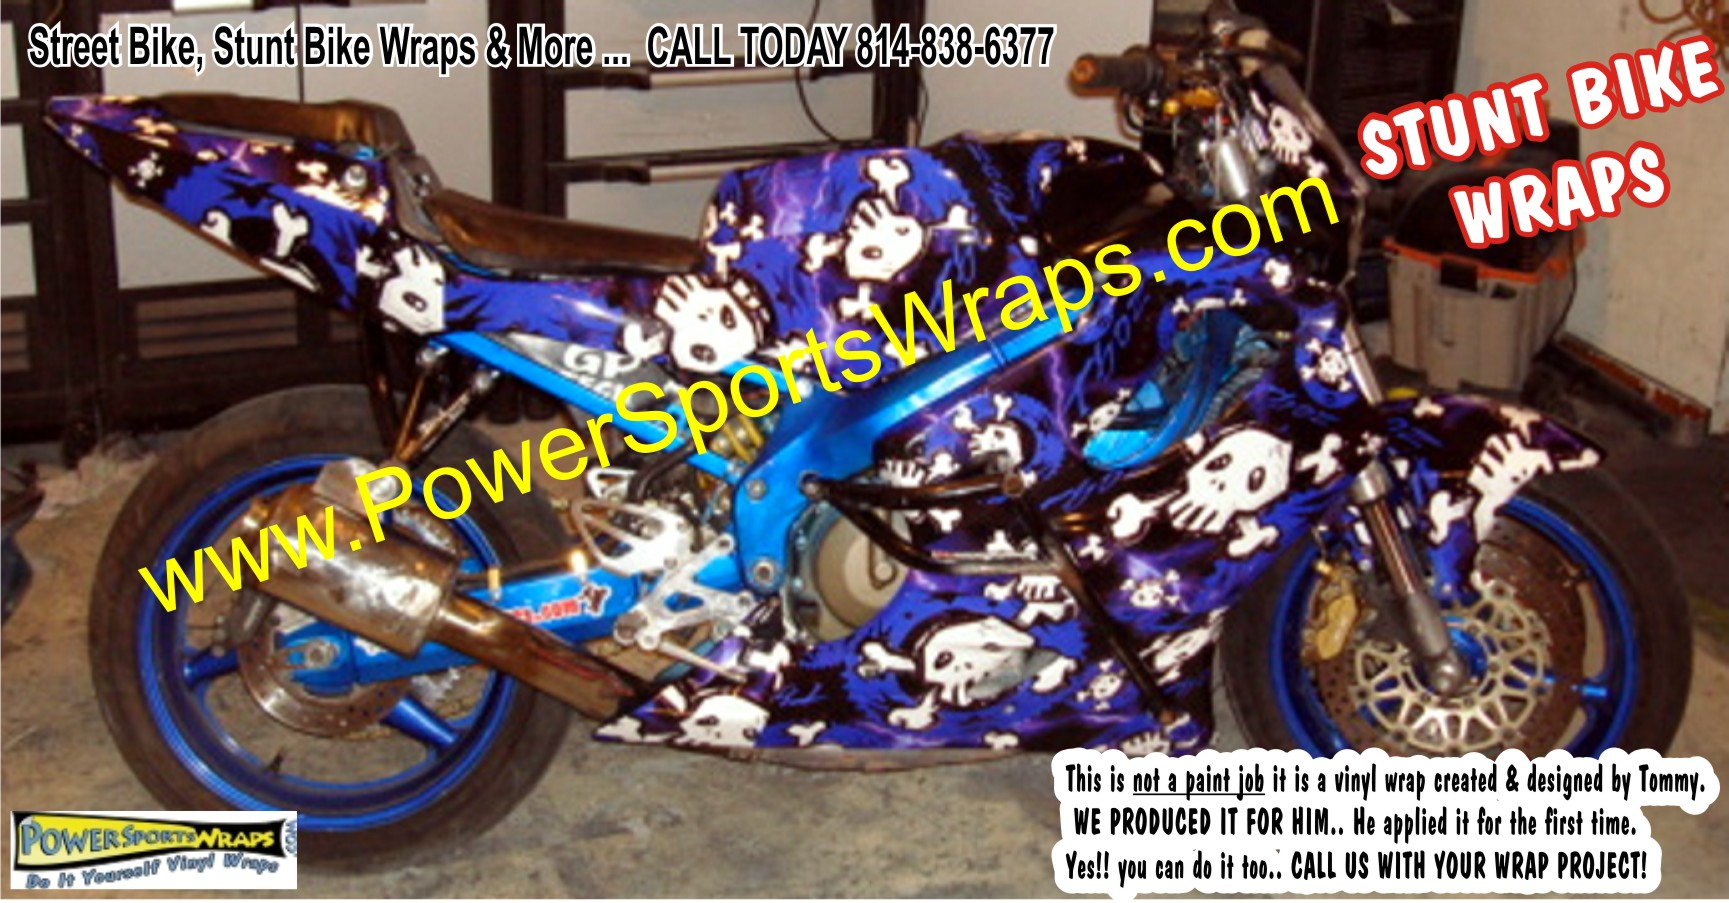 Stunt Bike Vinyl Wrap Archives Powersportswrapscom - Vinyl bike wrapmotorcycle wrap archives powersportswrapscom